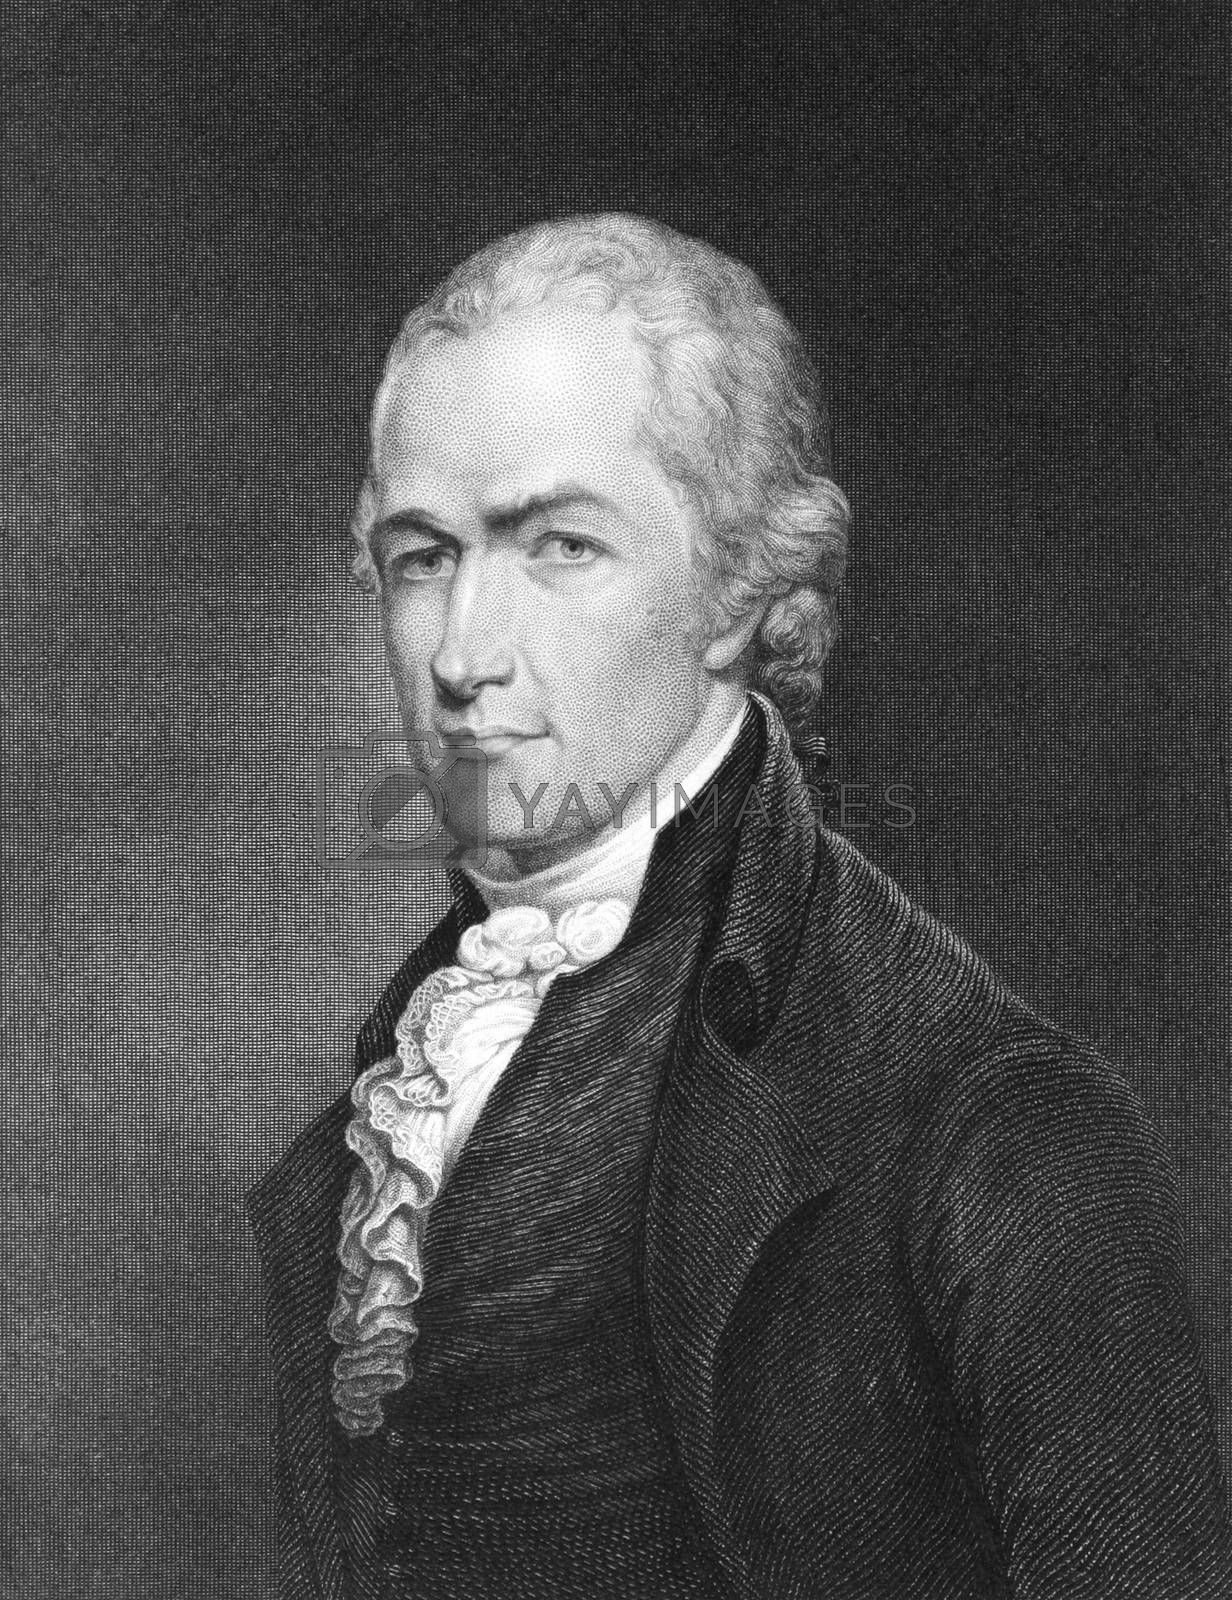 Alexander Hamilton (1755-1804) on engraving from 1835. Founding father of the United States. Engraved by E.Prudhomme and published in ''National Portrait Gallery of Distinguished Americans Volume II'',USA,1835.